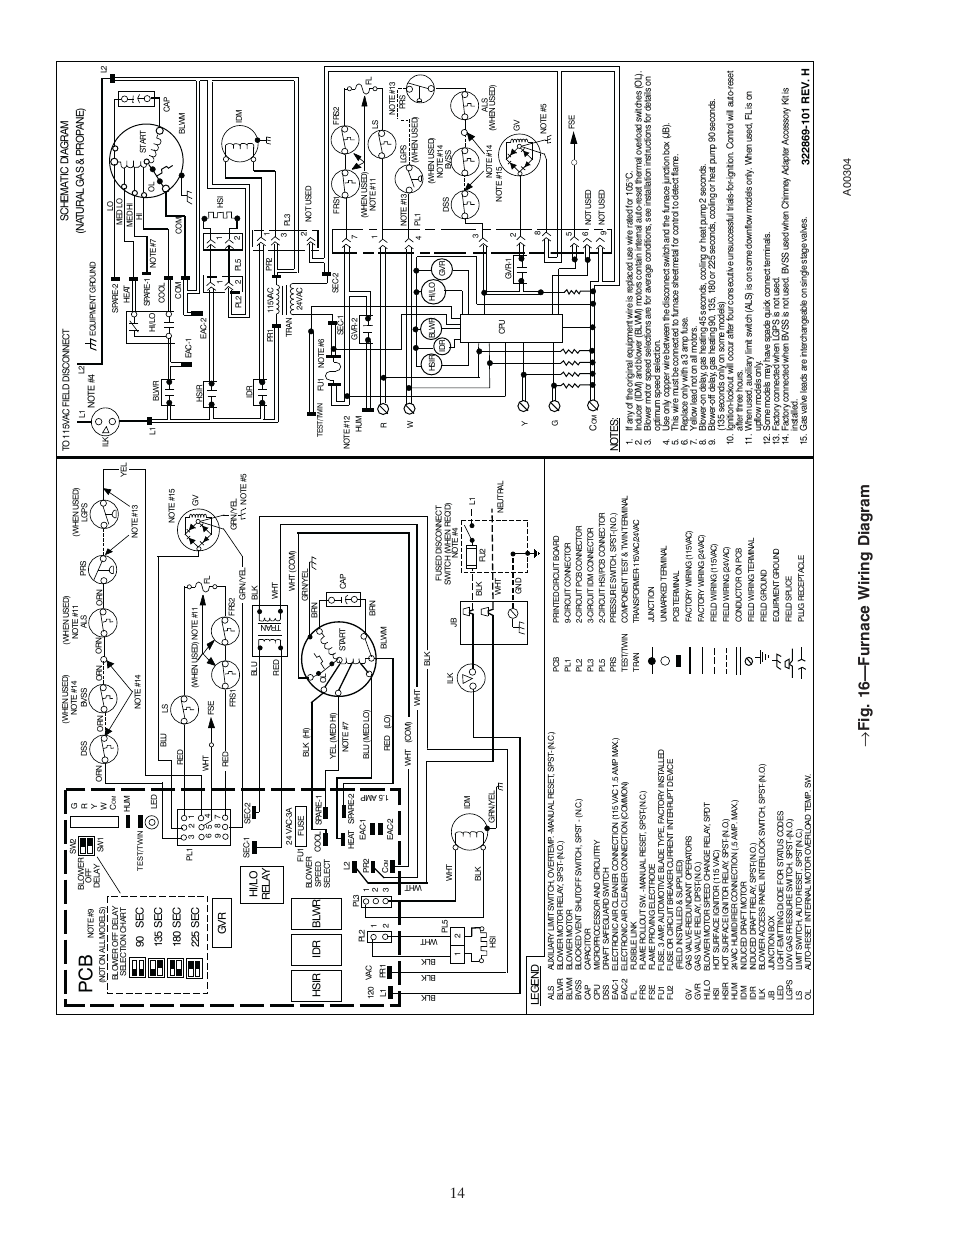 carrier weathermaker 8000 58zav page14 mh1410d wiring diagram wiring wiring diagram schematic  at soozxer.org